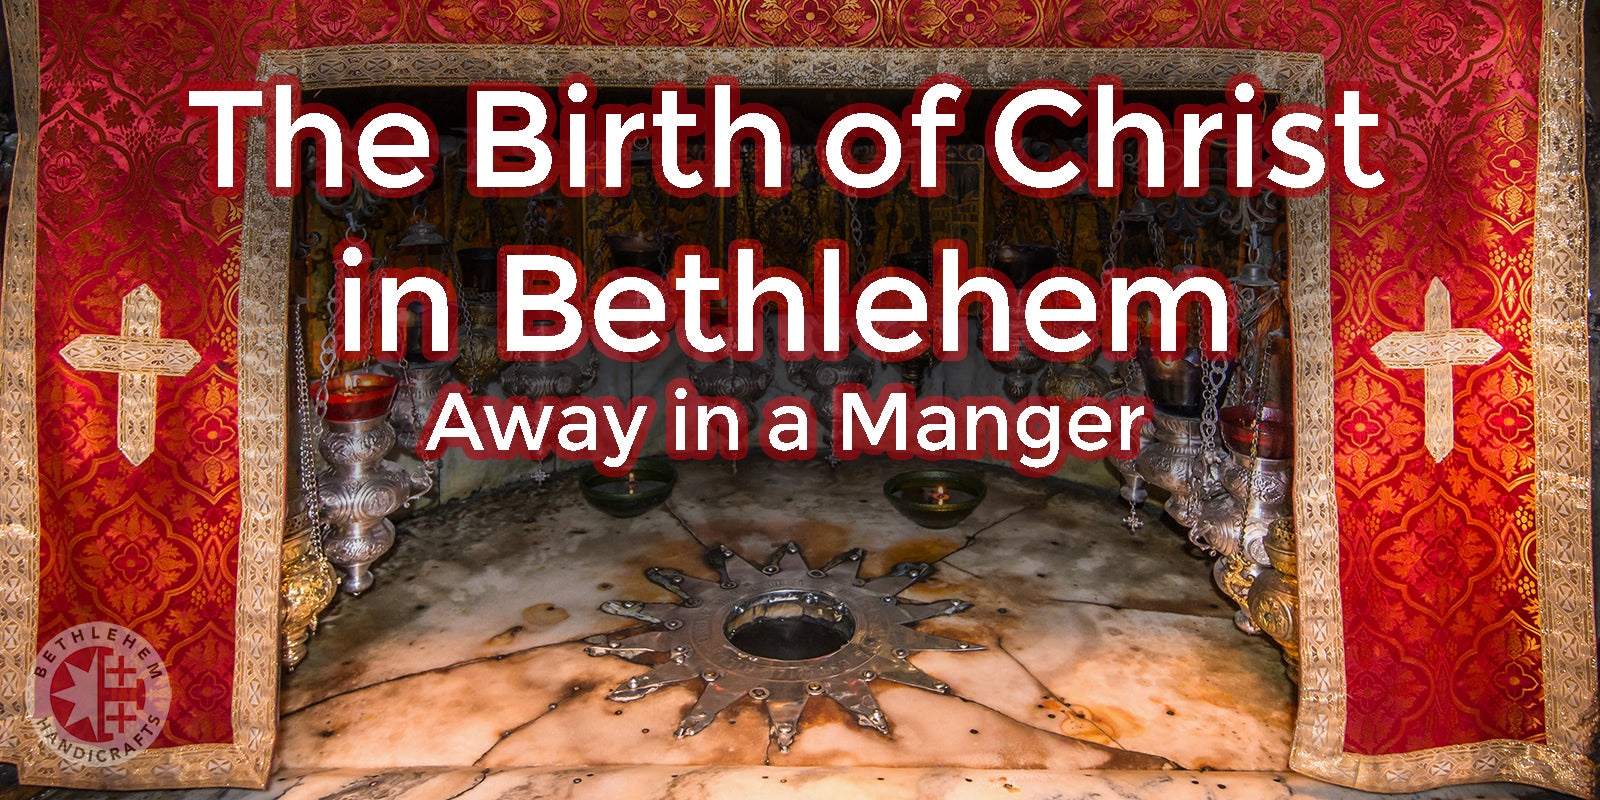 The Birth of Christ in Bethlehem